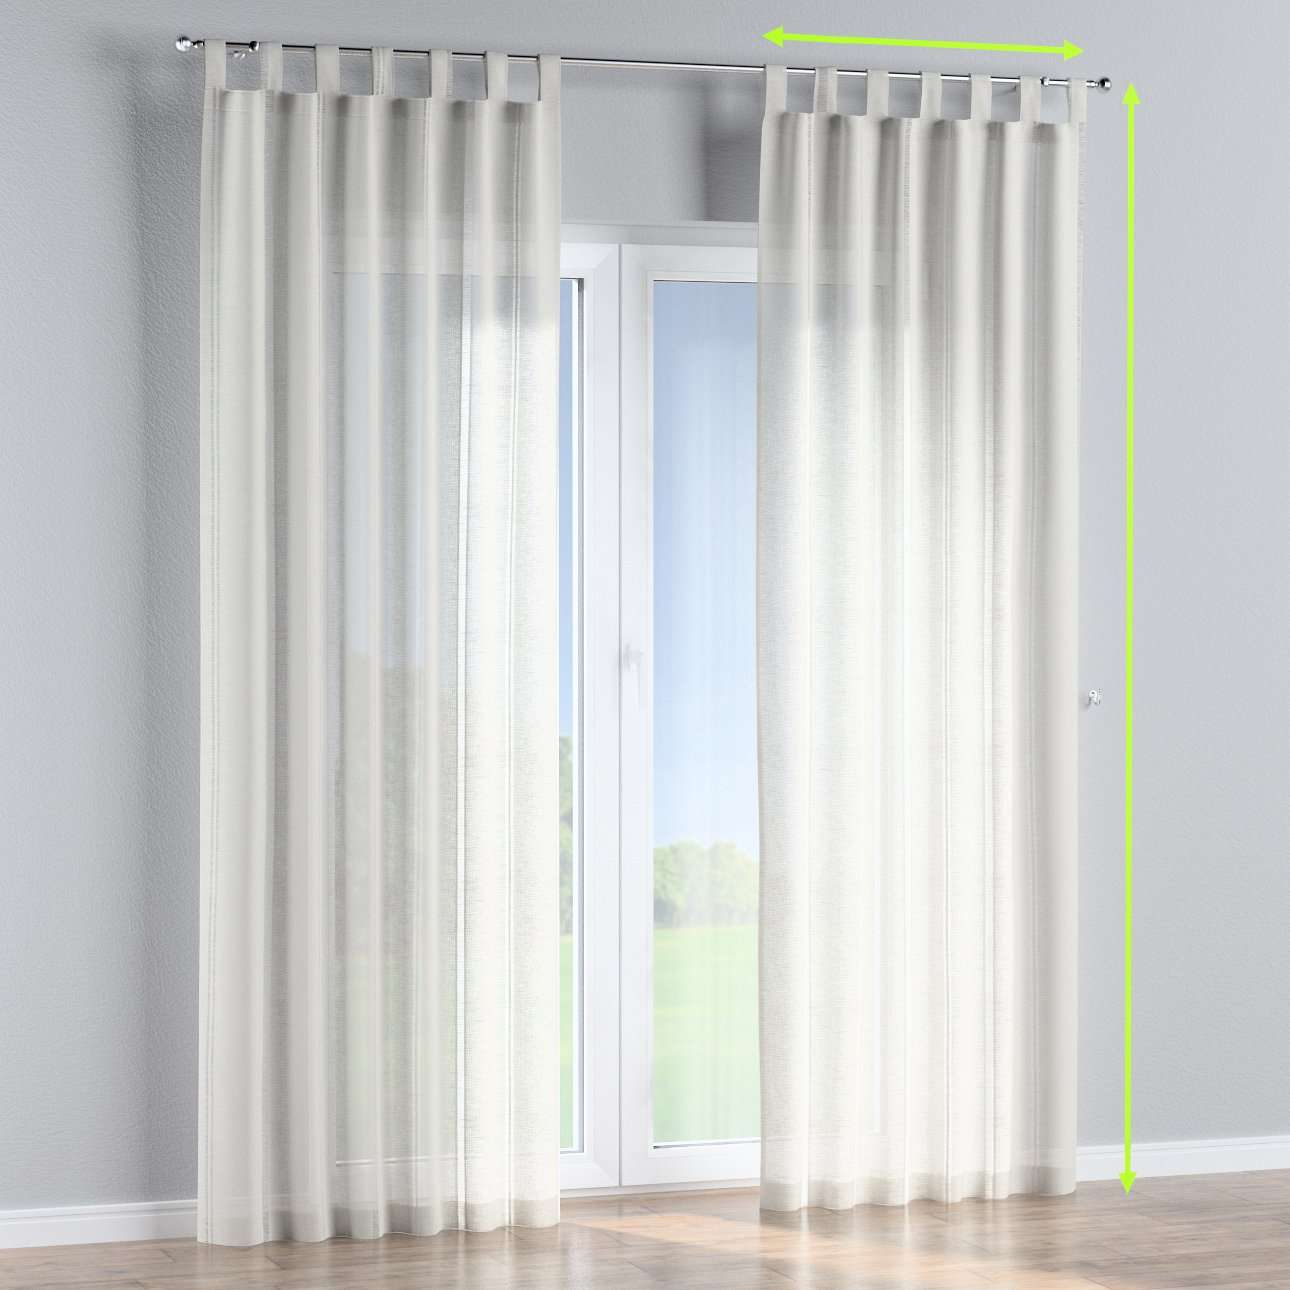 Tab top curtains in collection Romantica, fabric: 141-30